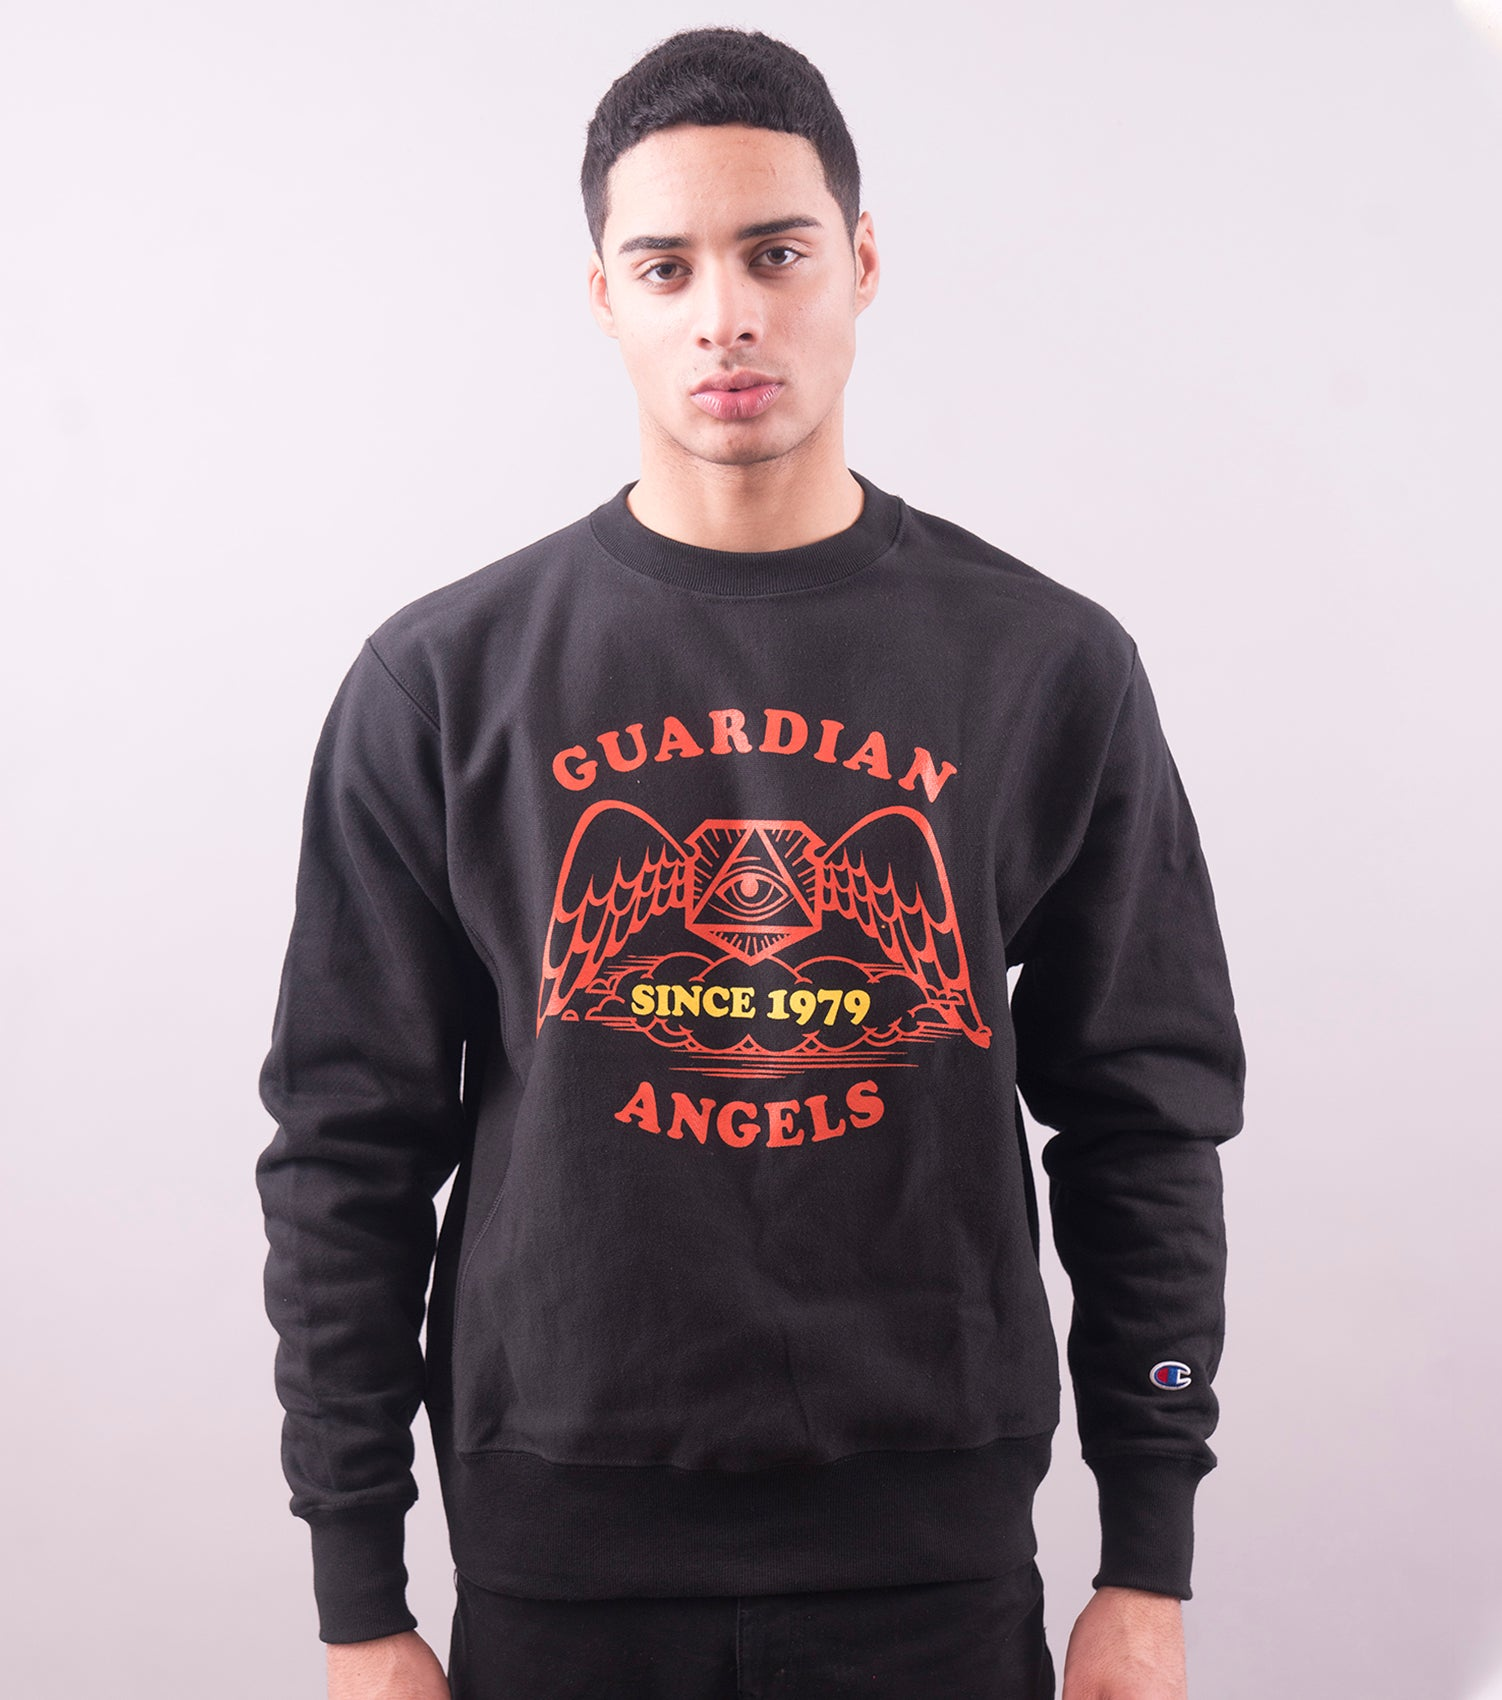 Vintage Guardian Angels Sweatshirt (Black)